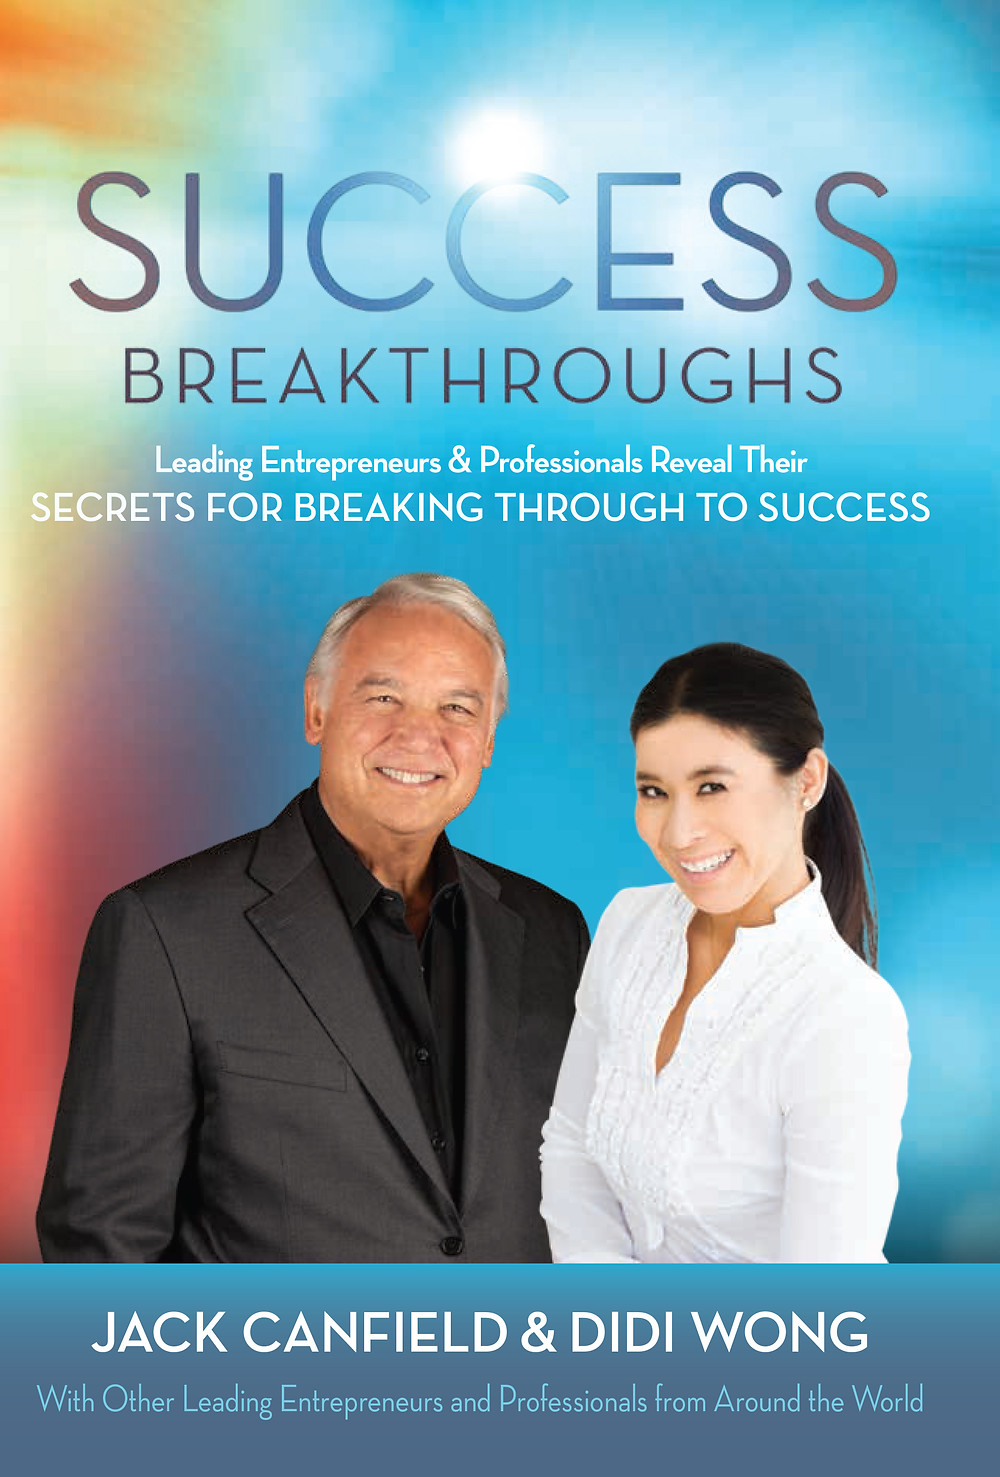 Success Breakthroughs by Jack Canfield & Didi Wong (cover)